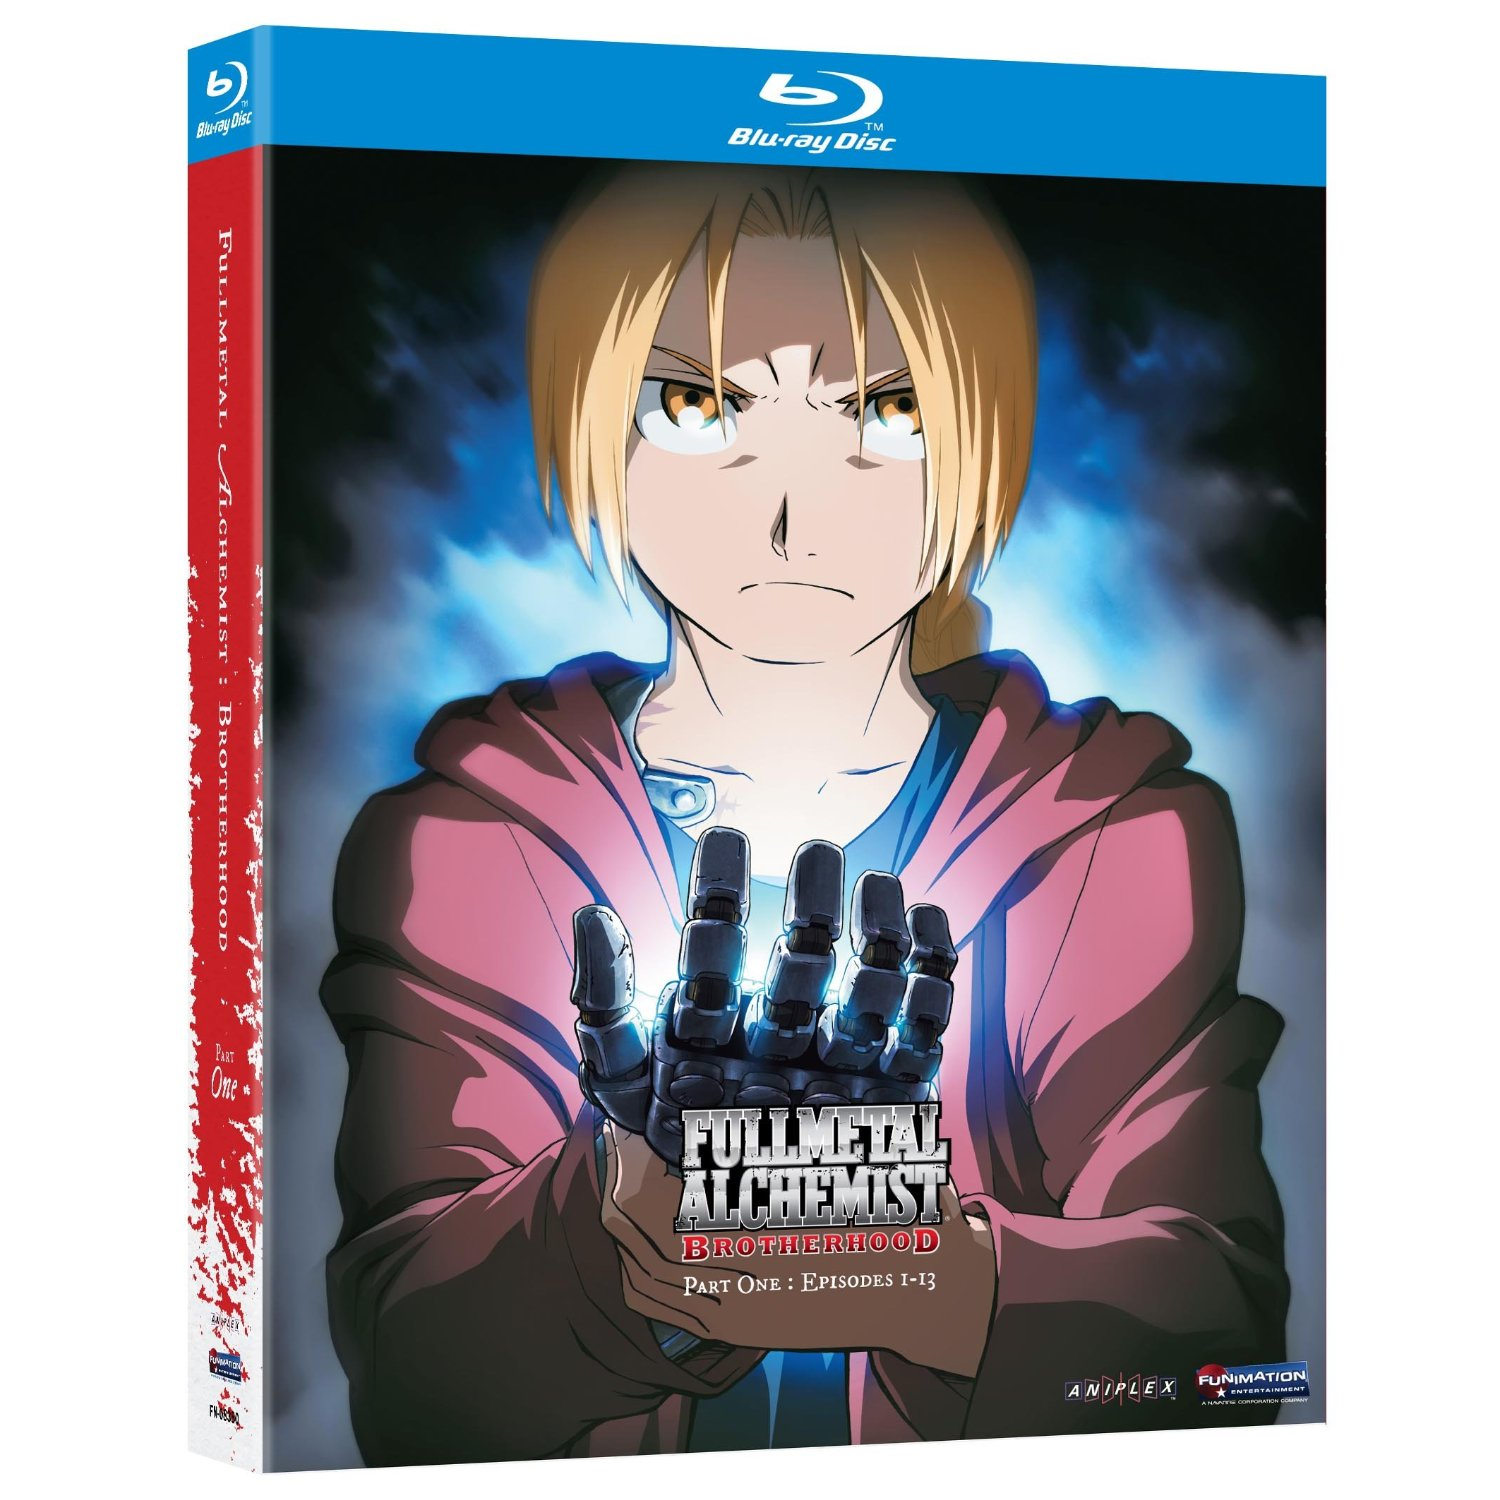 Fullmetal Alchemist Brotherhood 1 édition Blu-ray